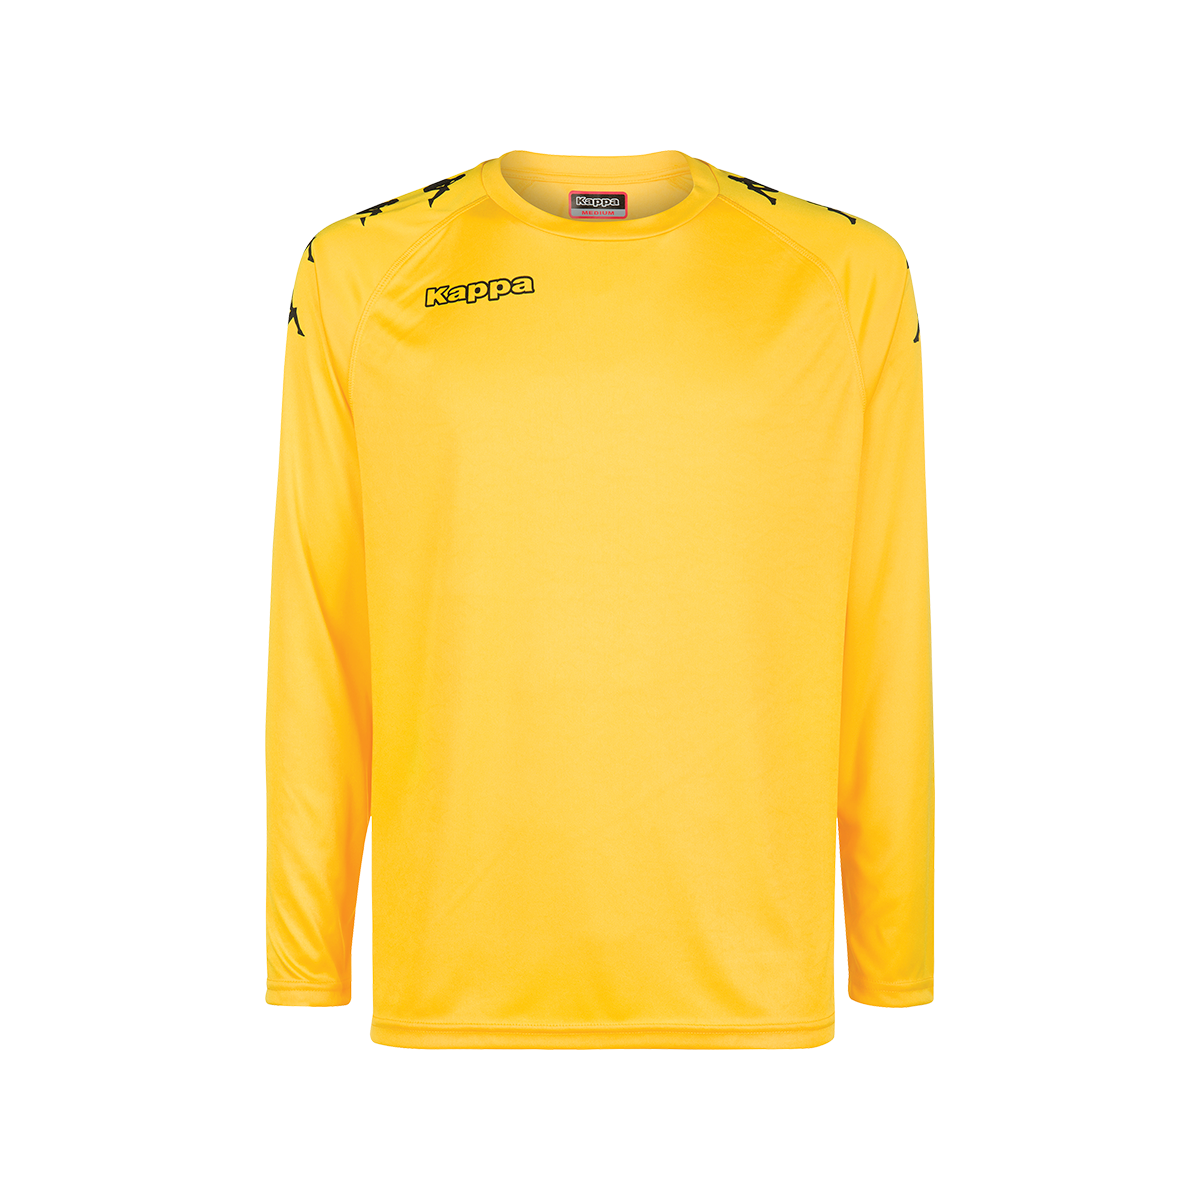 Kappa Cinanda Match Shirt LS - Yellow